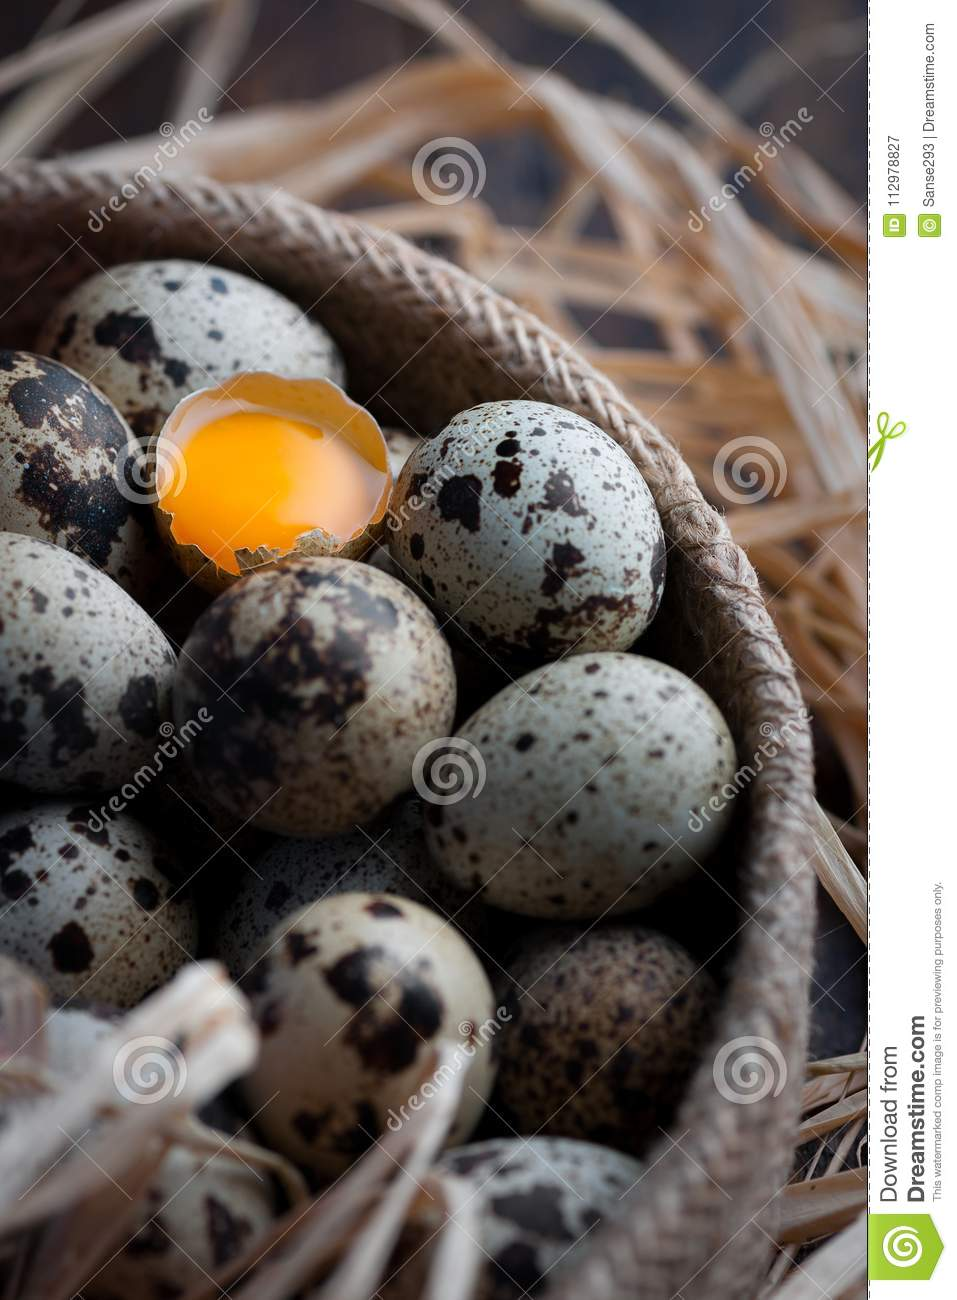 Bird eggs with one of them fracture and view the yolk